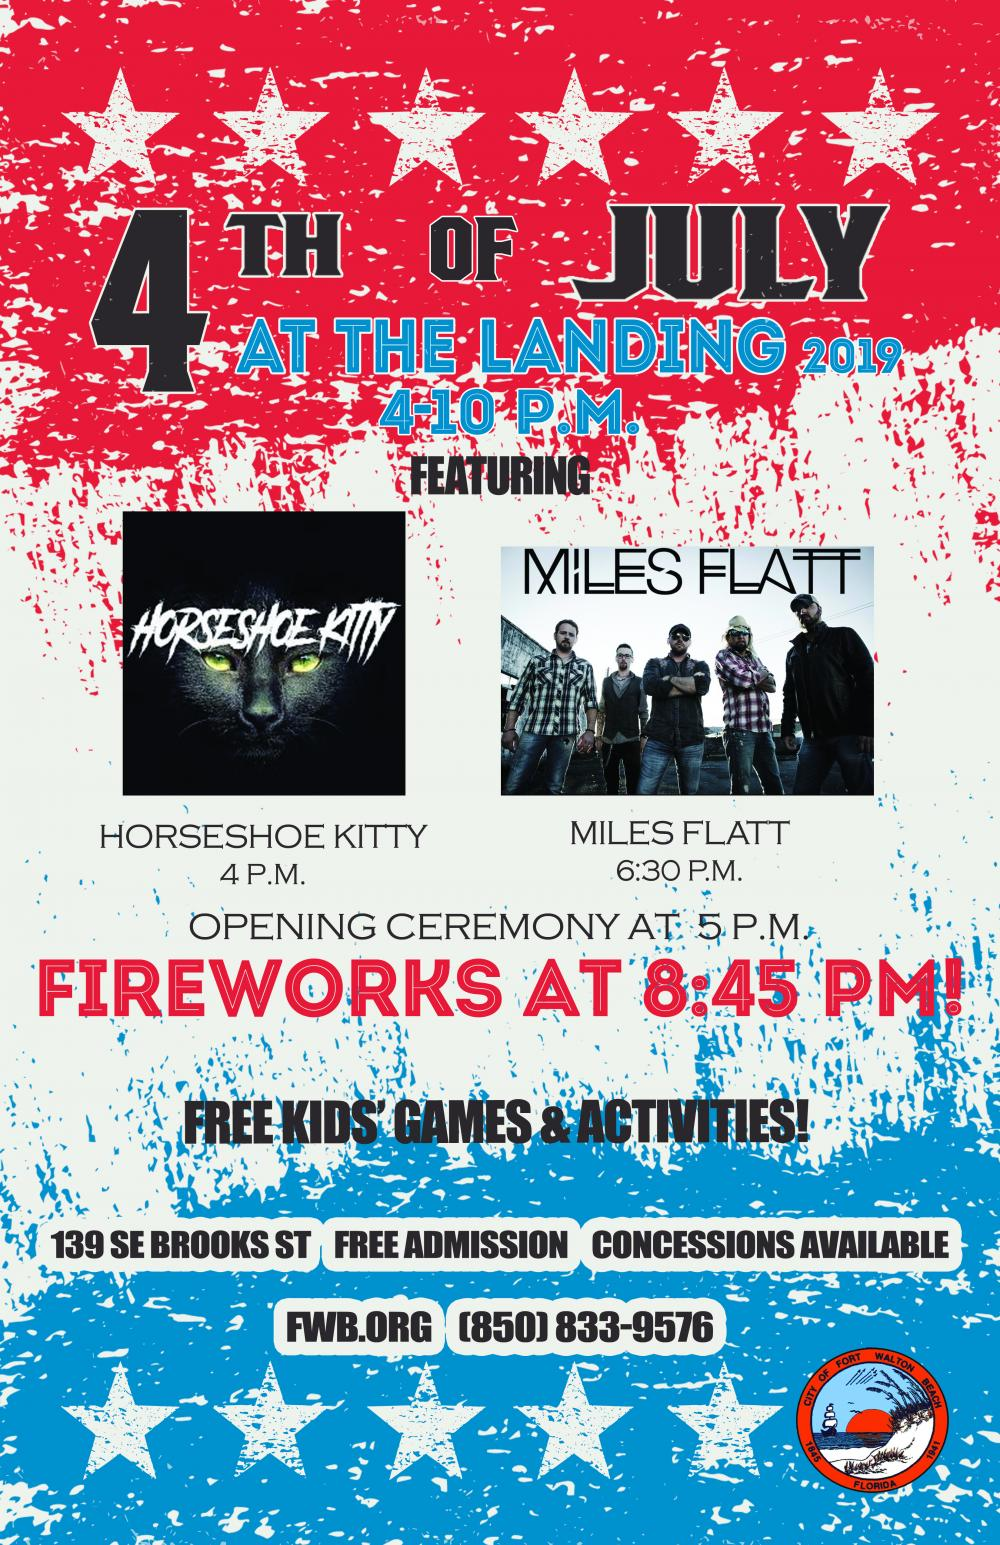 City of Fort Walton Beach July 4th Celebration at the Landing | Fort